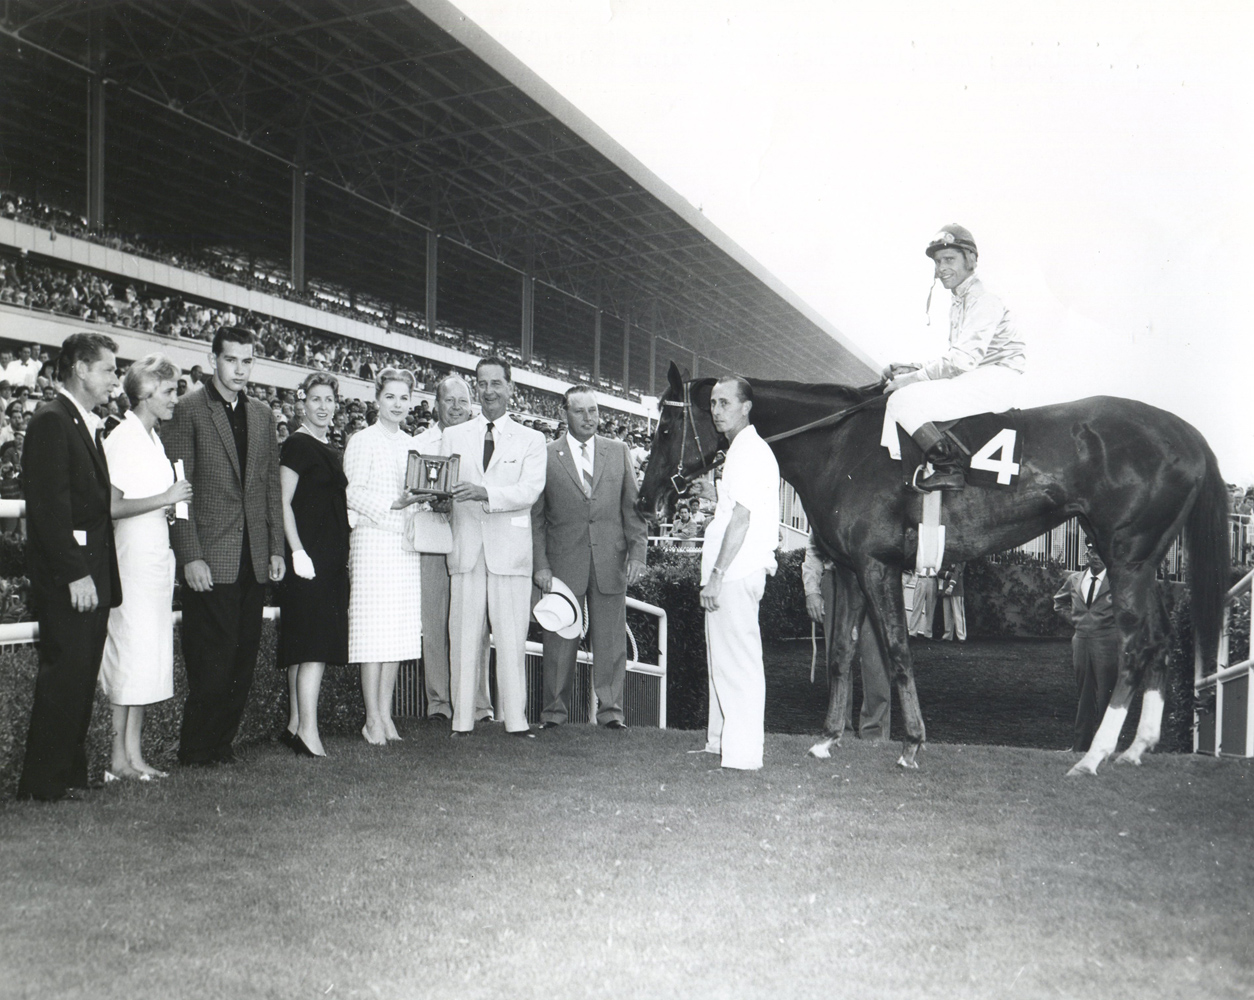 The winning connections of Silver Spoon in the winner's circle for the 1959 Cinema Handicap (Museum Collection)